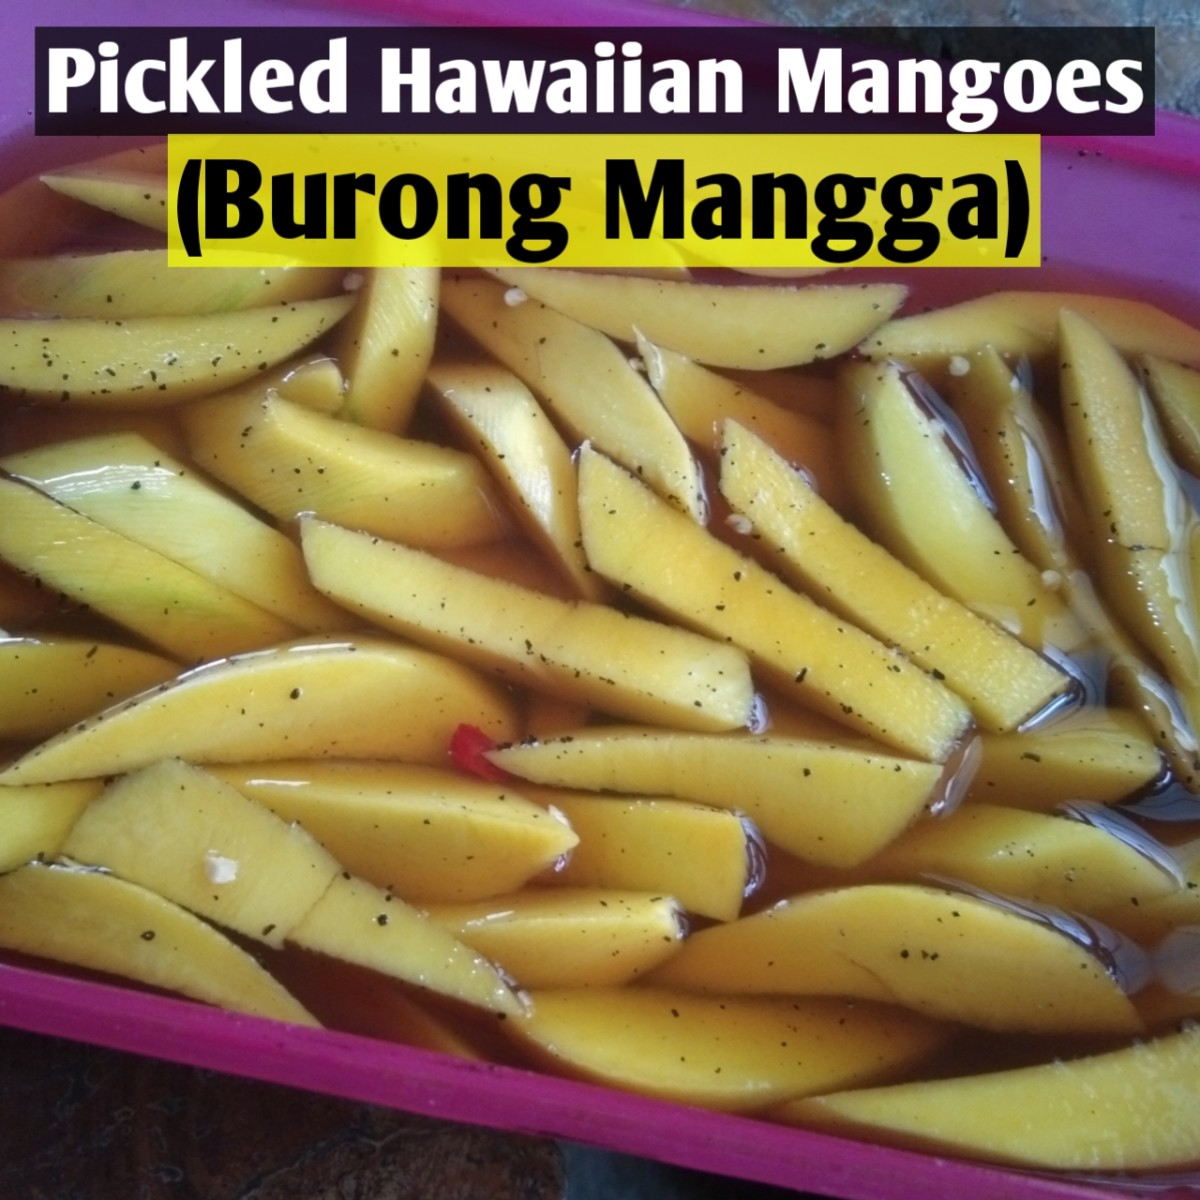 Pickled Hawaiian mangoes (burong mangga)